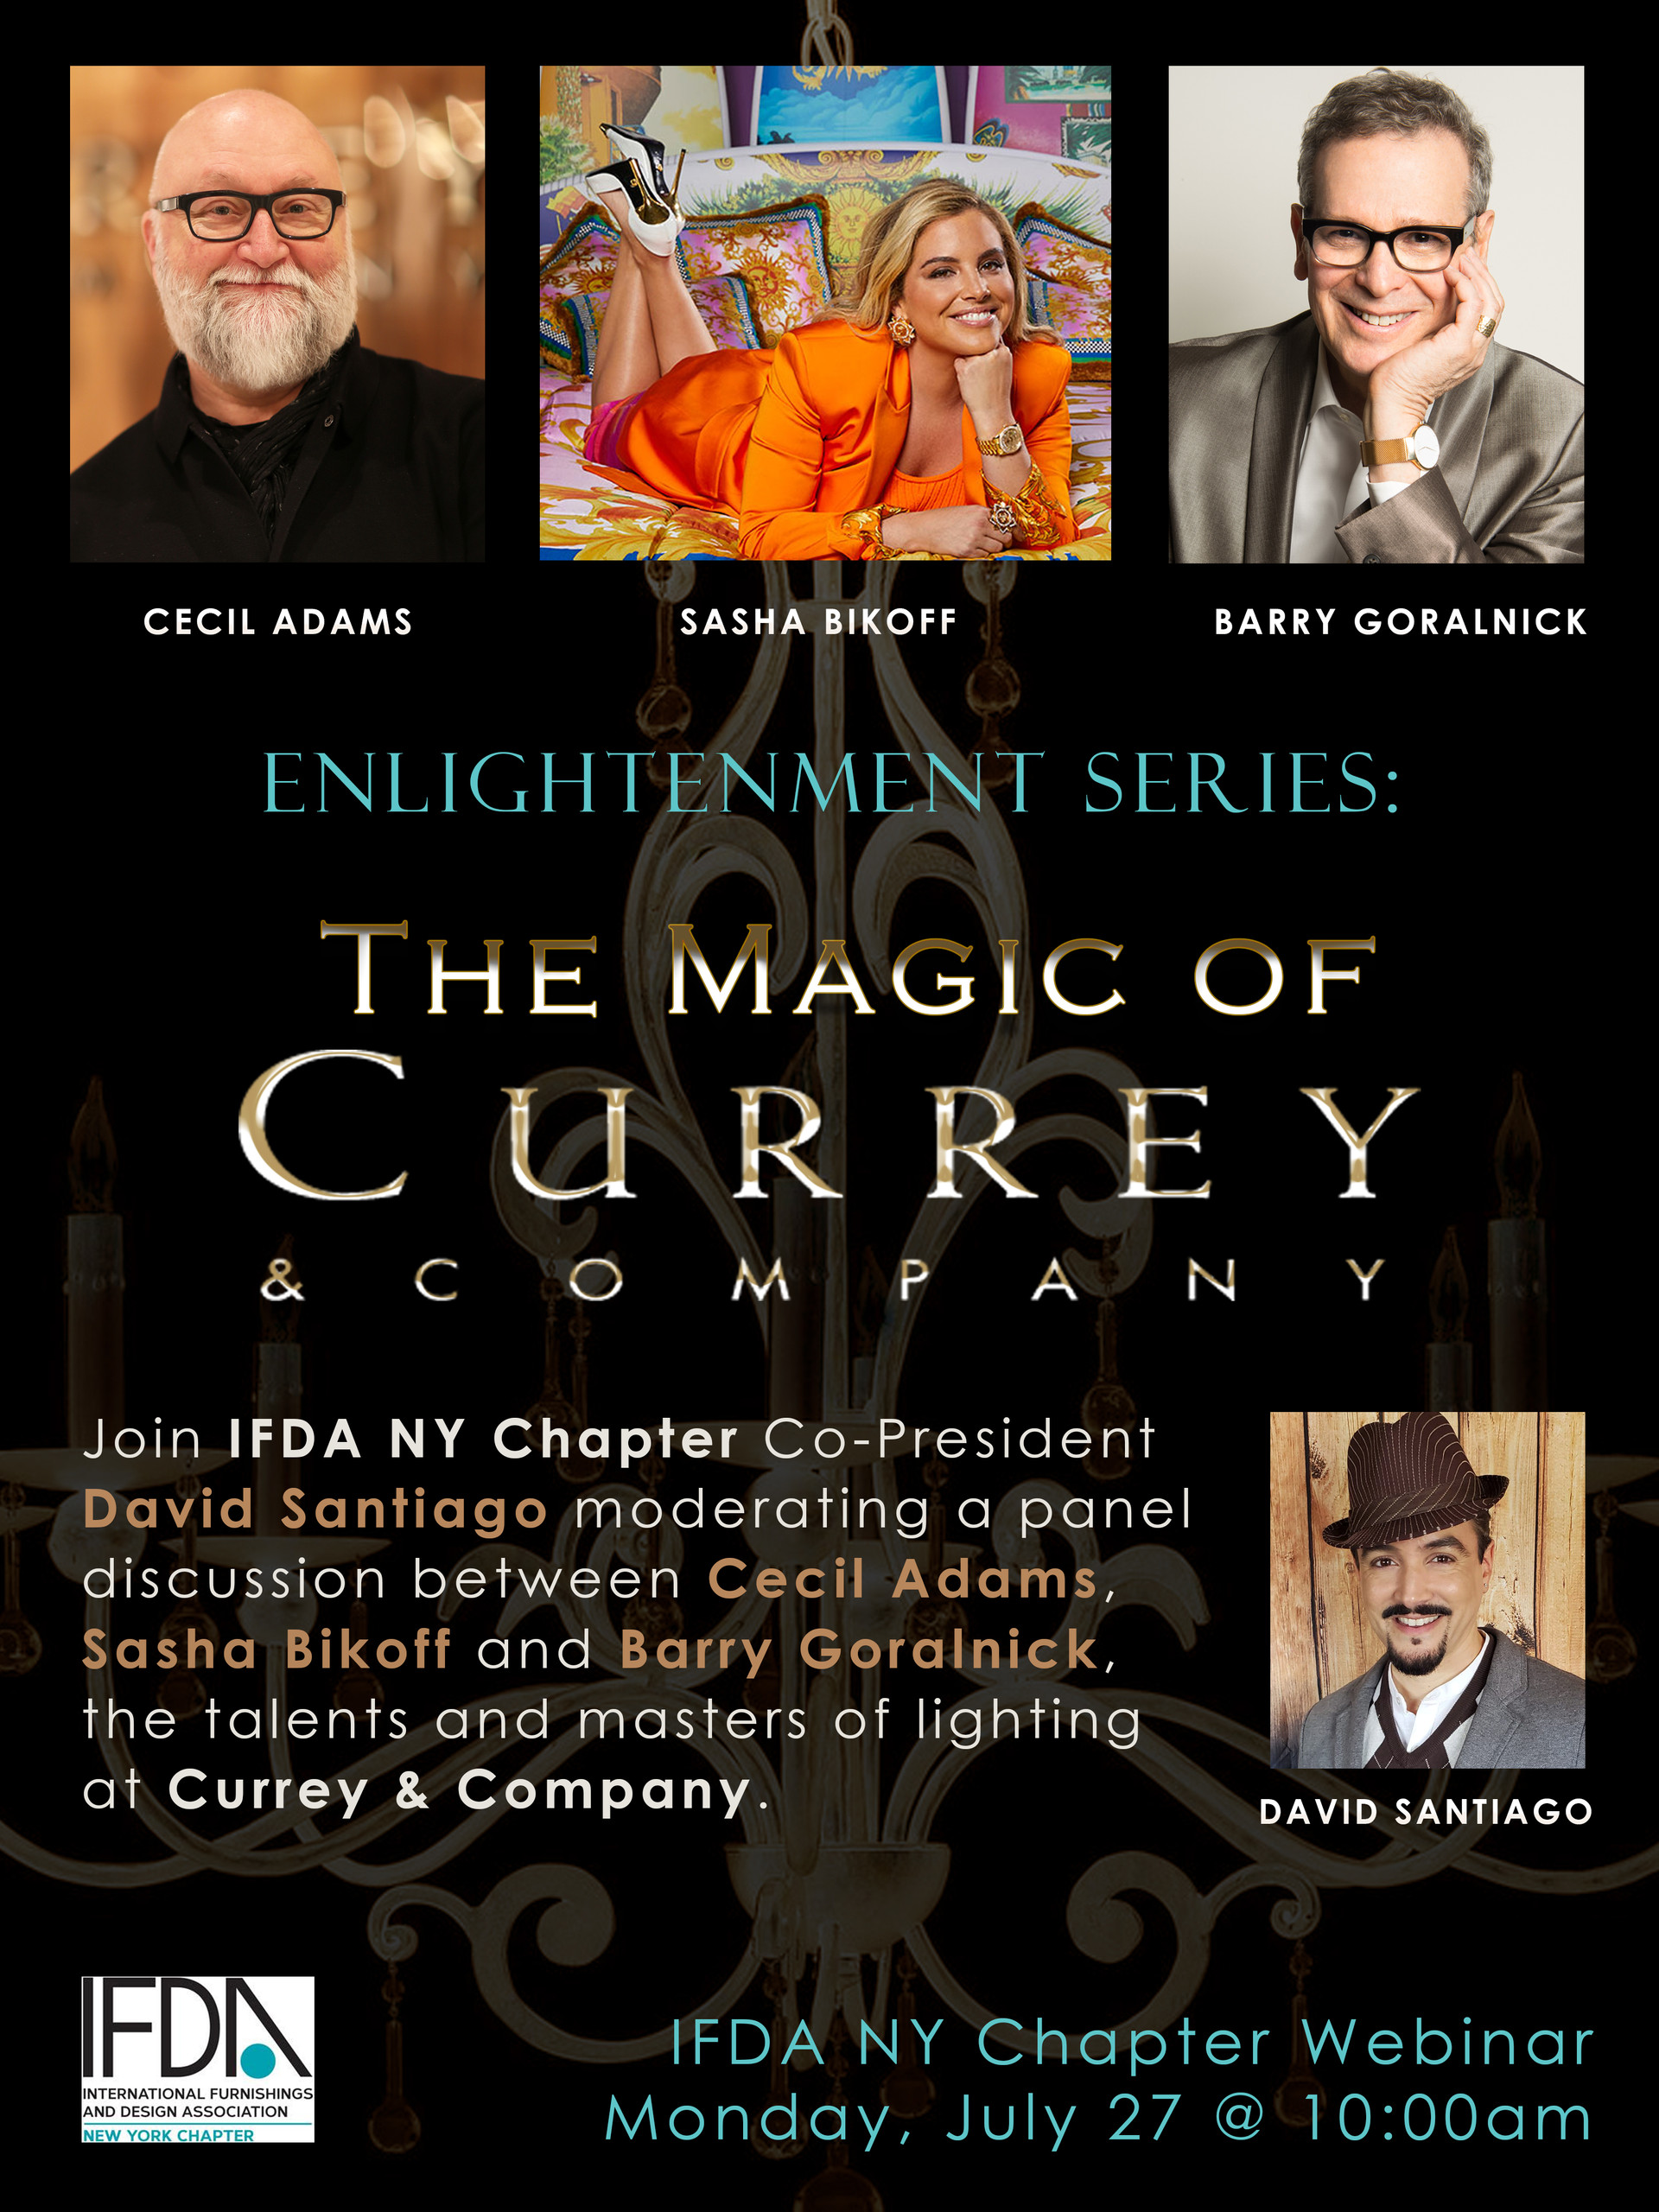 The Magic of Currey & Company